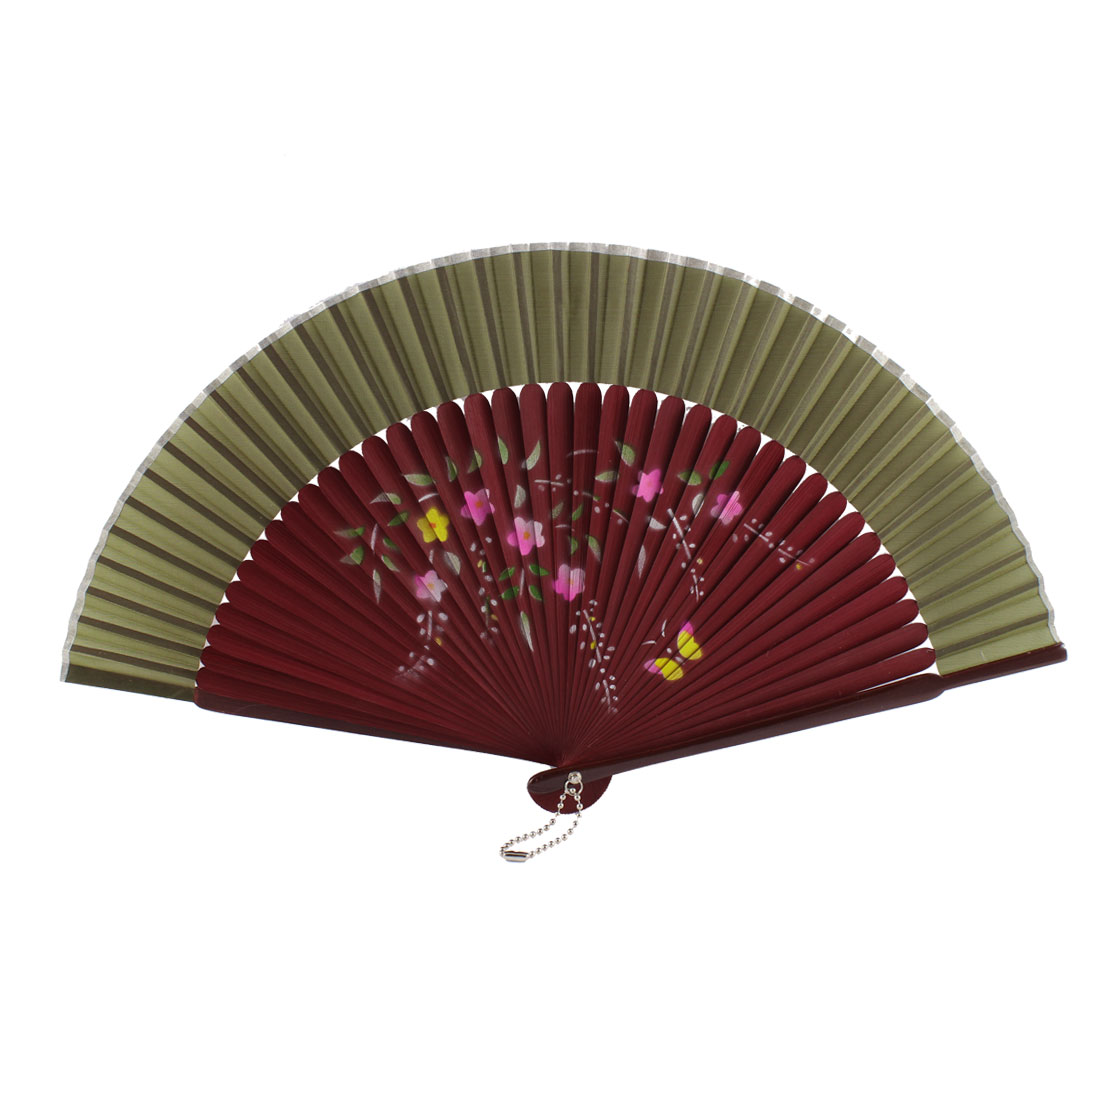 Chinese Style Lady Dancer Summer Party Folding Hand Held Fan Gift Ornament Army Green Burgundy